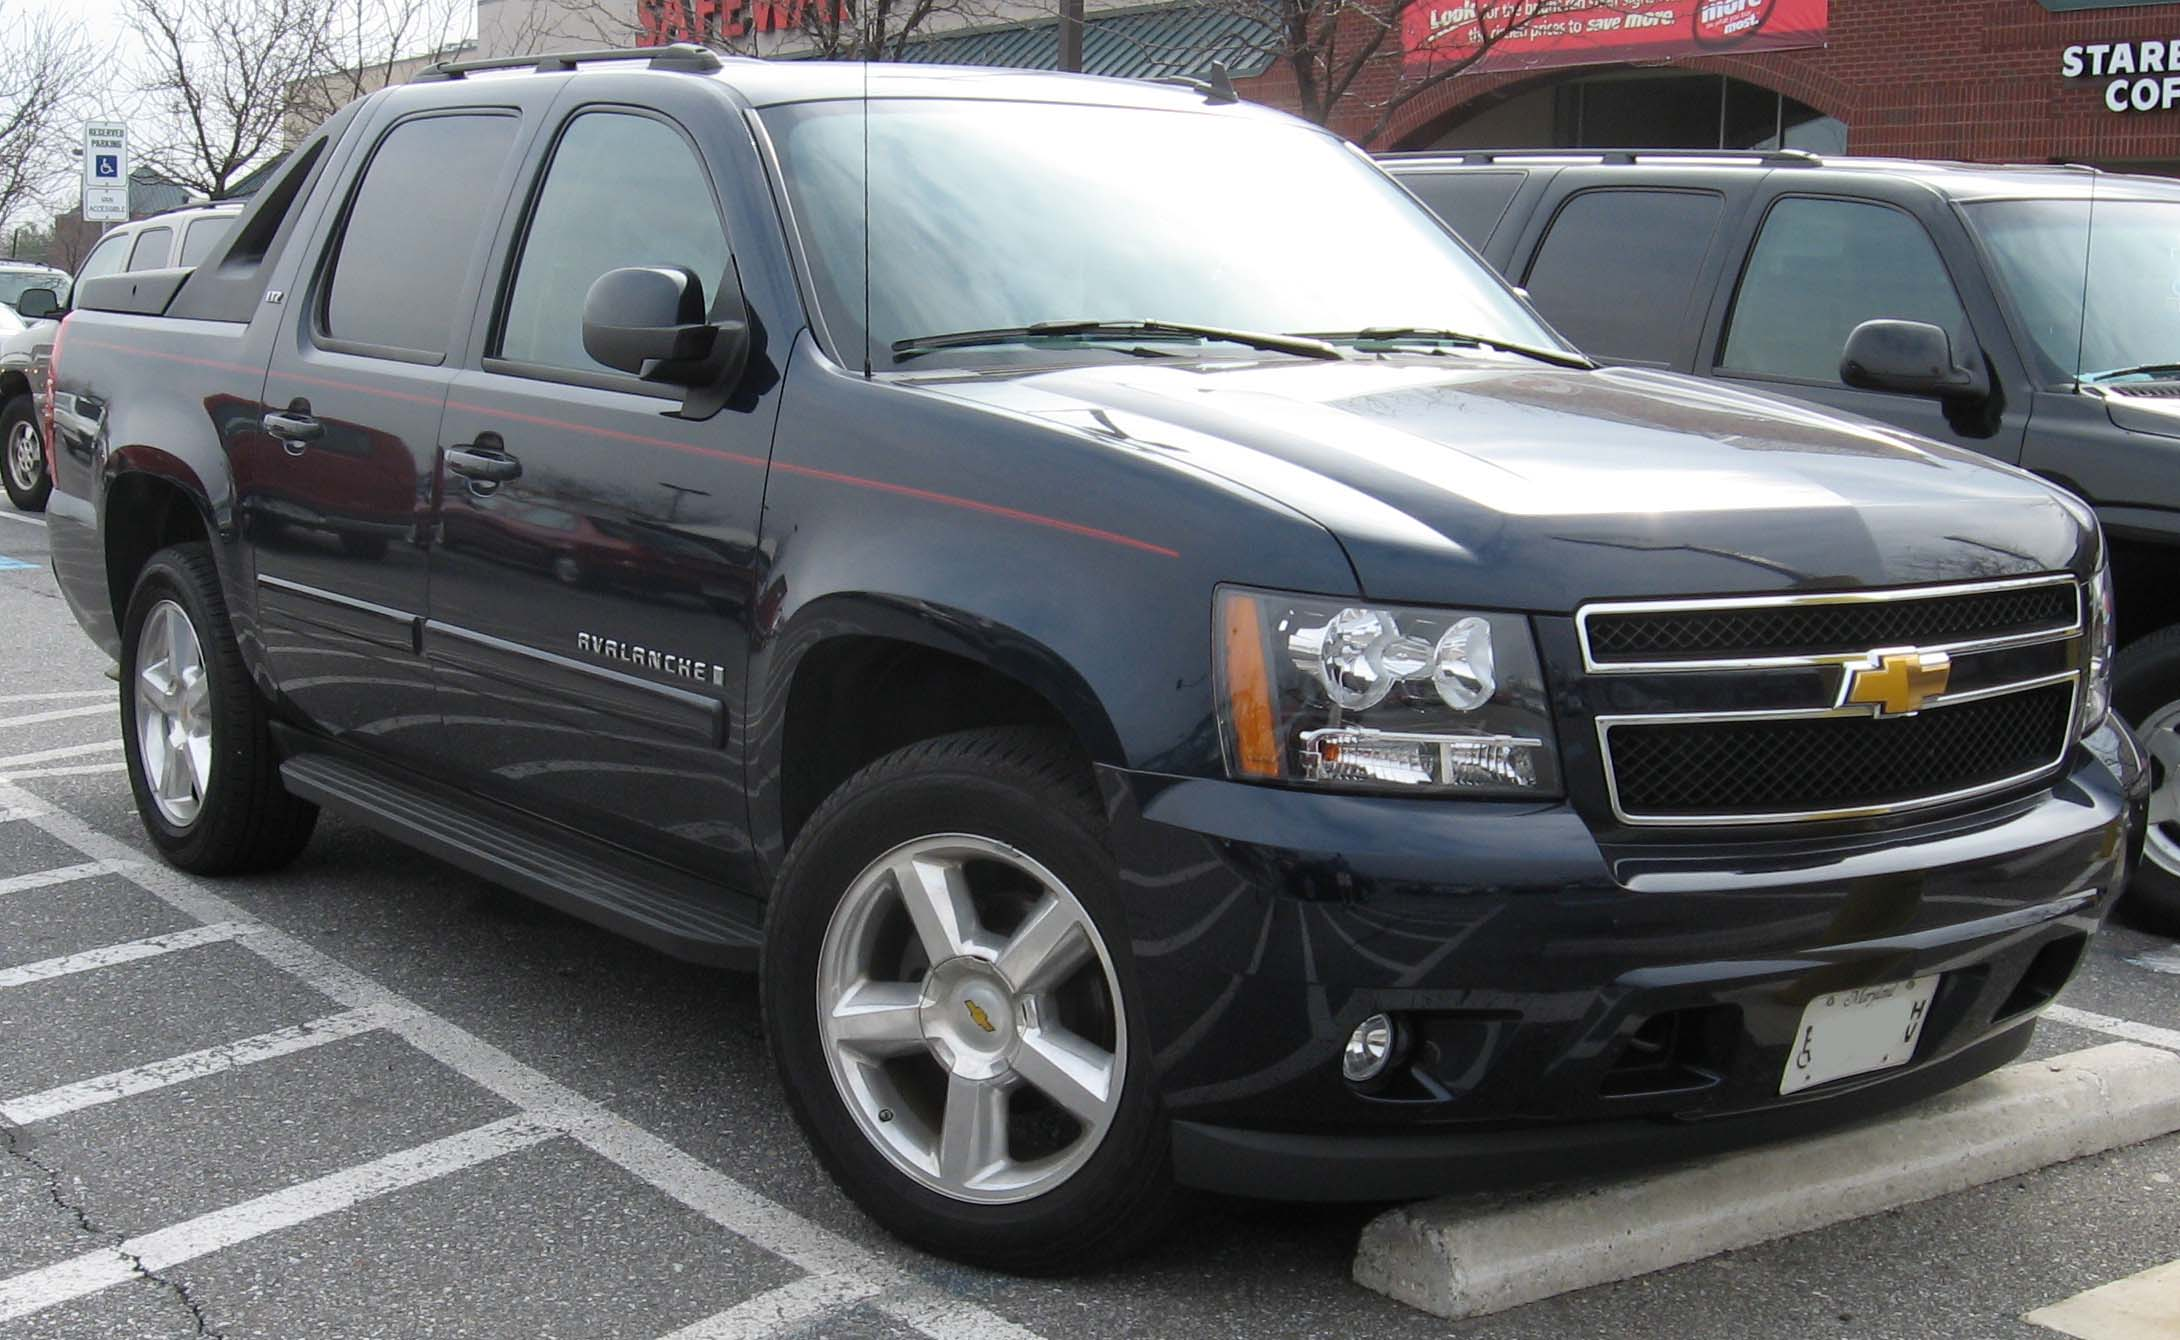 Chevrolet Avalanche Wikipedia >> 2010 Chevrolet Avalanche - Information and photos - MOMENTcar